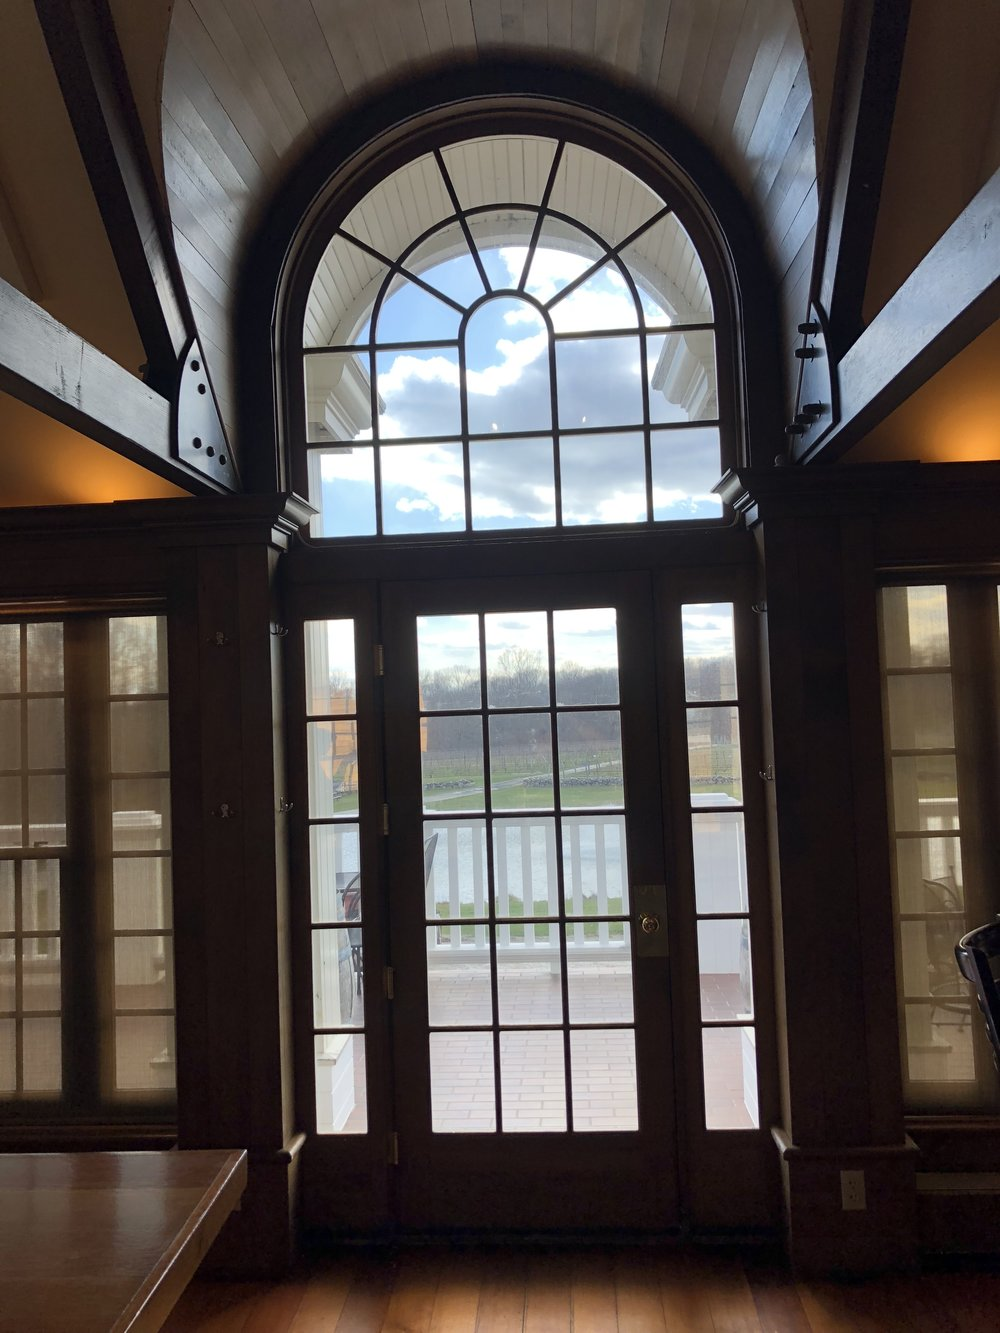 although possible- speciality window treatments aren't always financially practical- here in clinton, ct we installed solar window film that eliminated harsh uv rays which turned this room into a greenhouse, without COMPROMISING this priceless view of the vineyards.